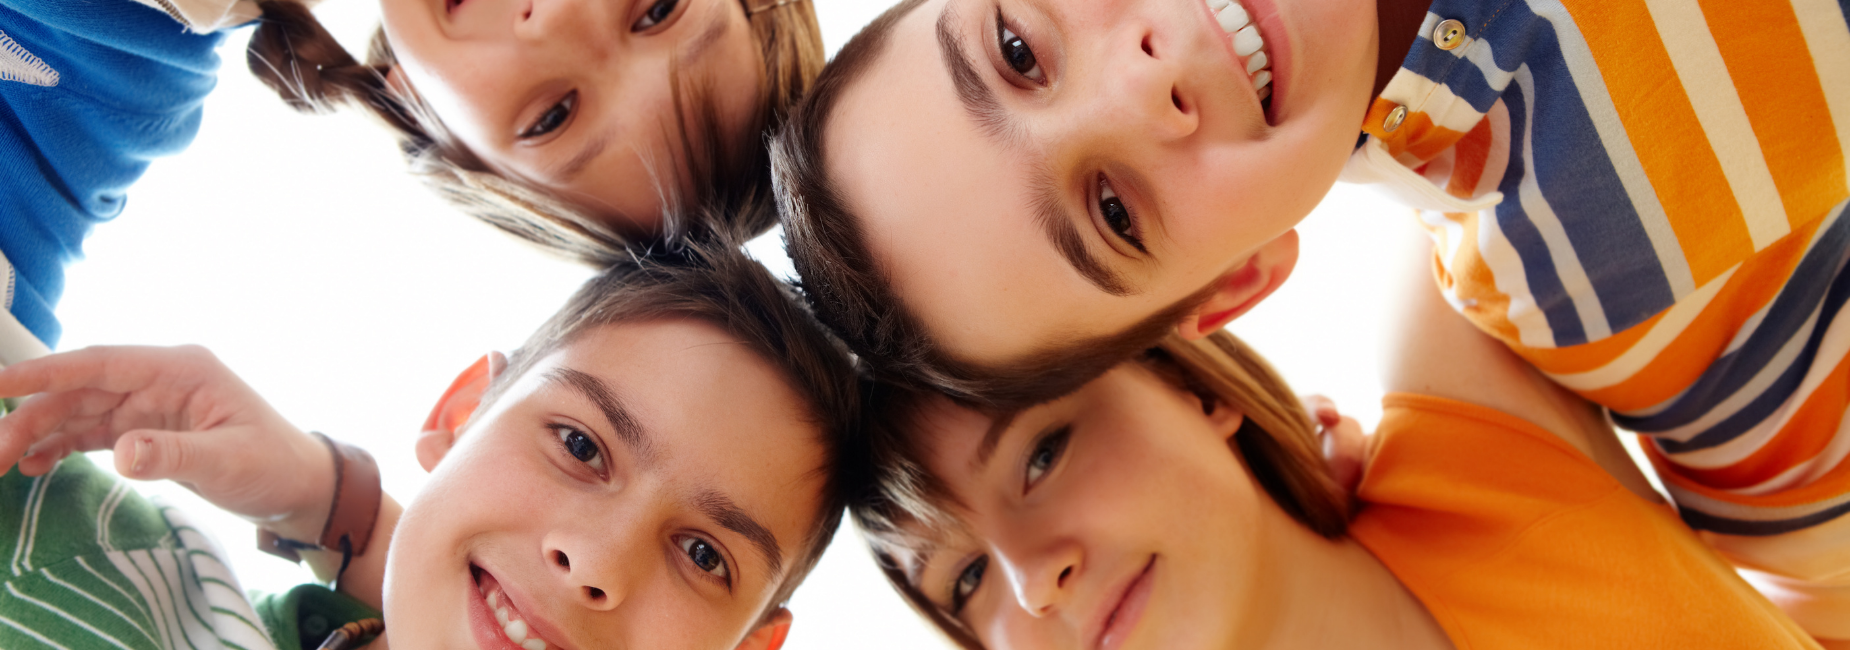 4 pre teens in a circle looking down at camera